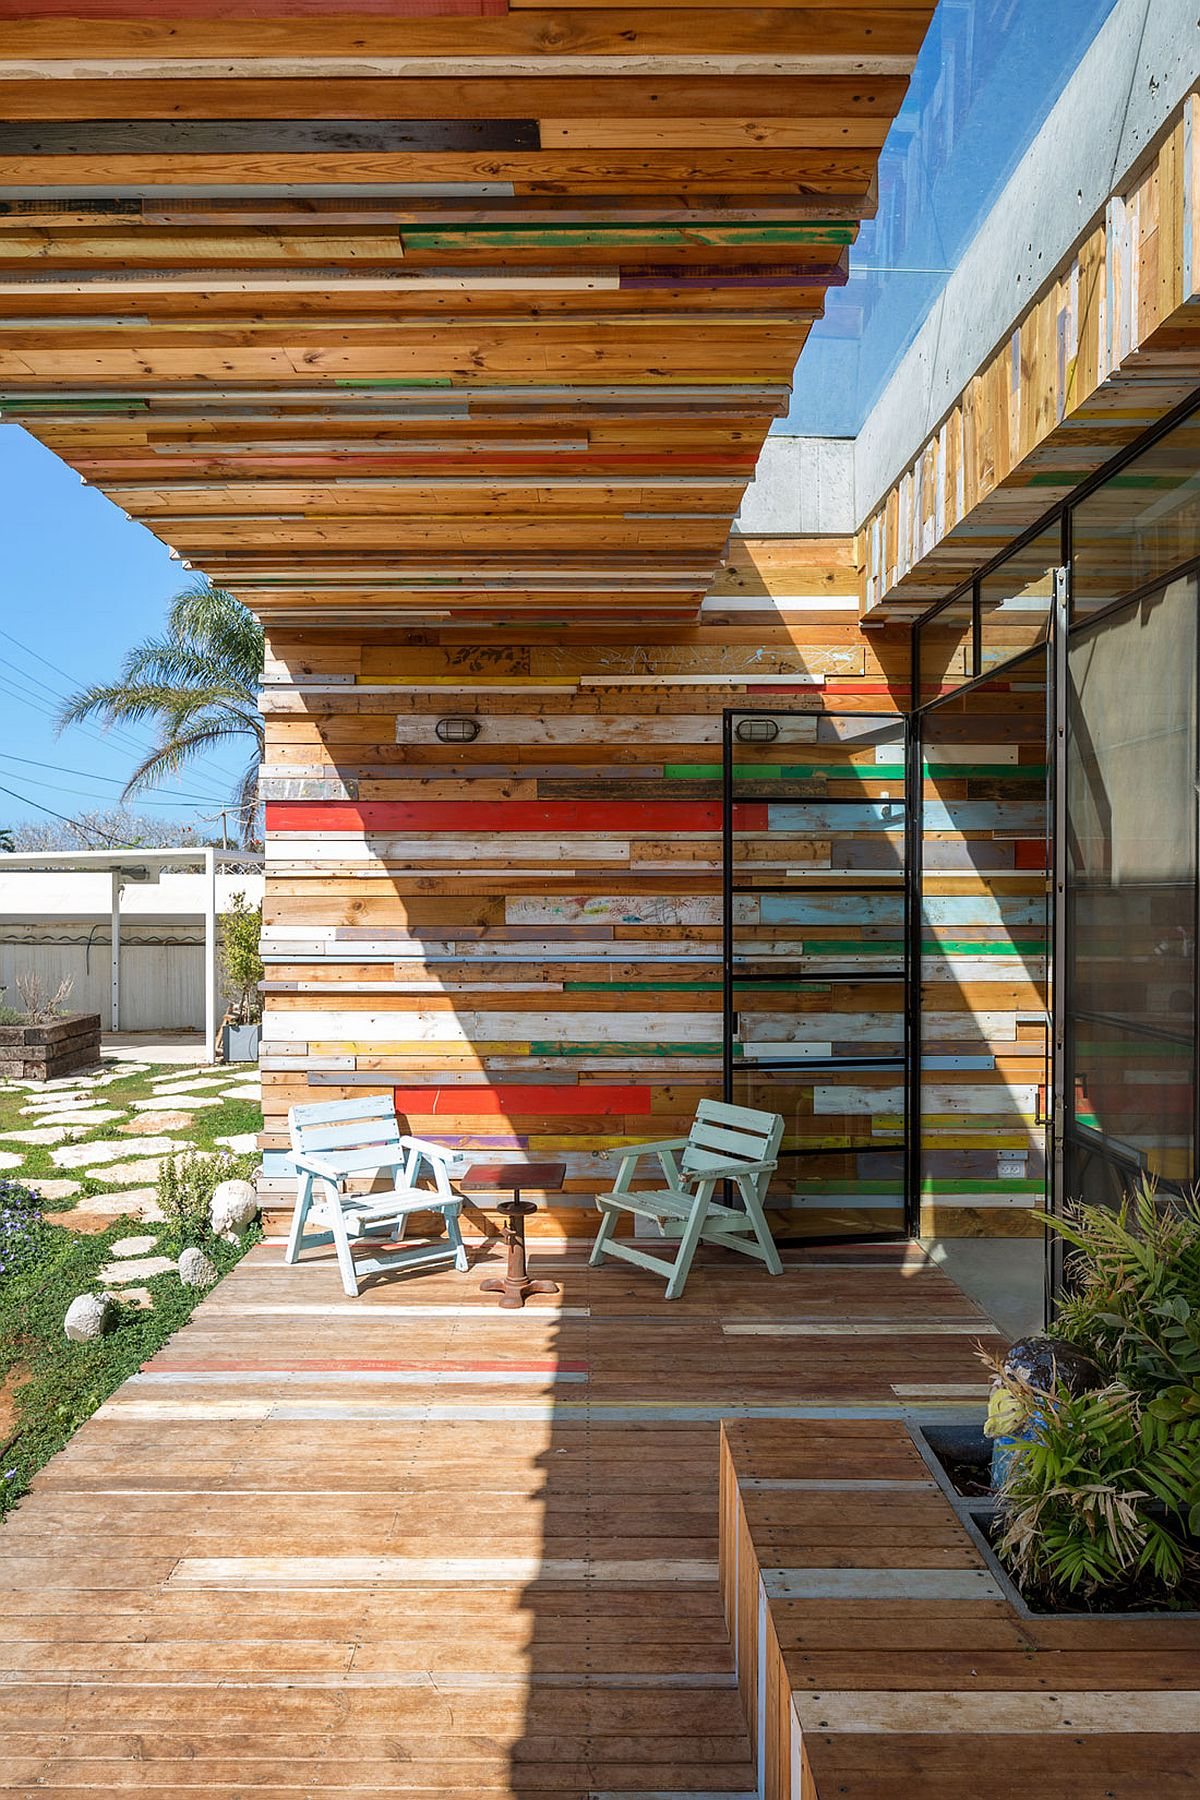 Reclaimed wood gives the smart home a unique facade